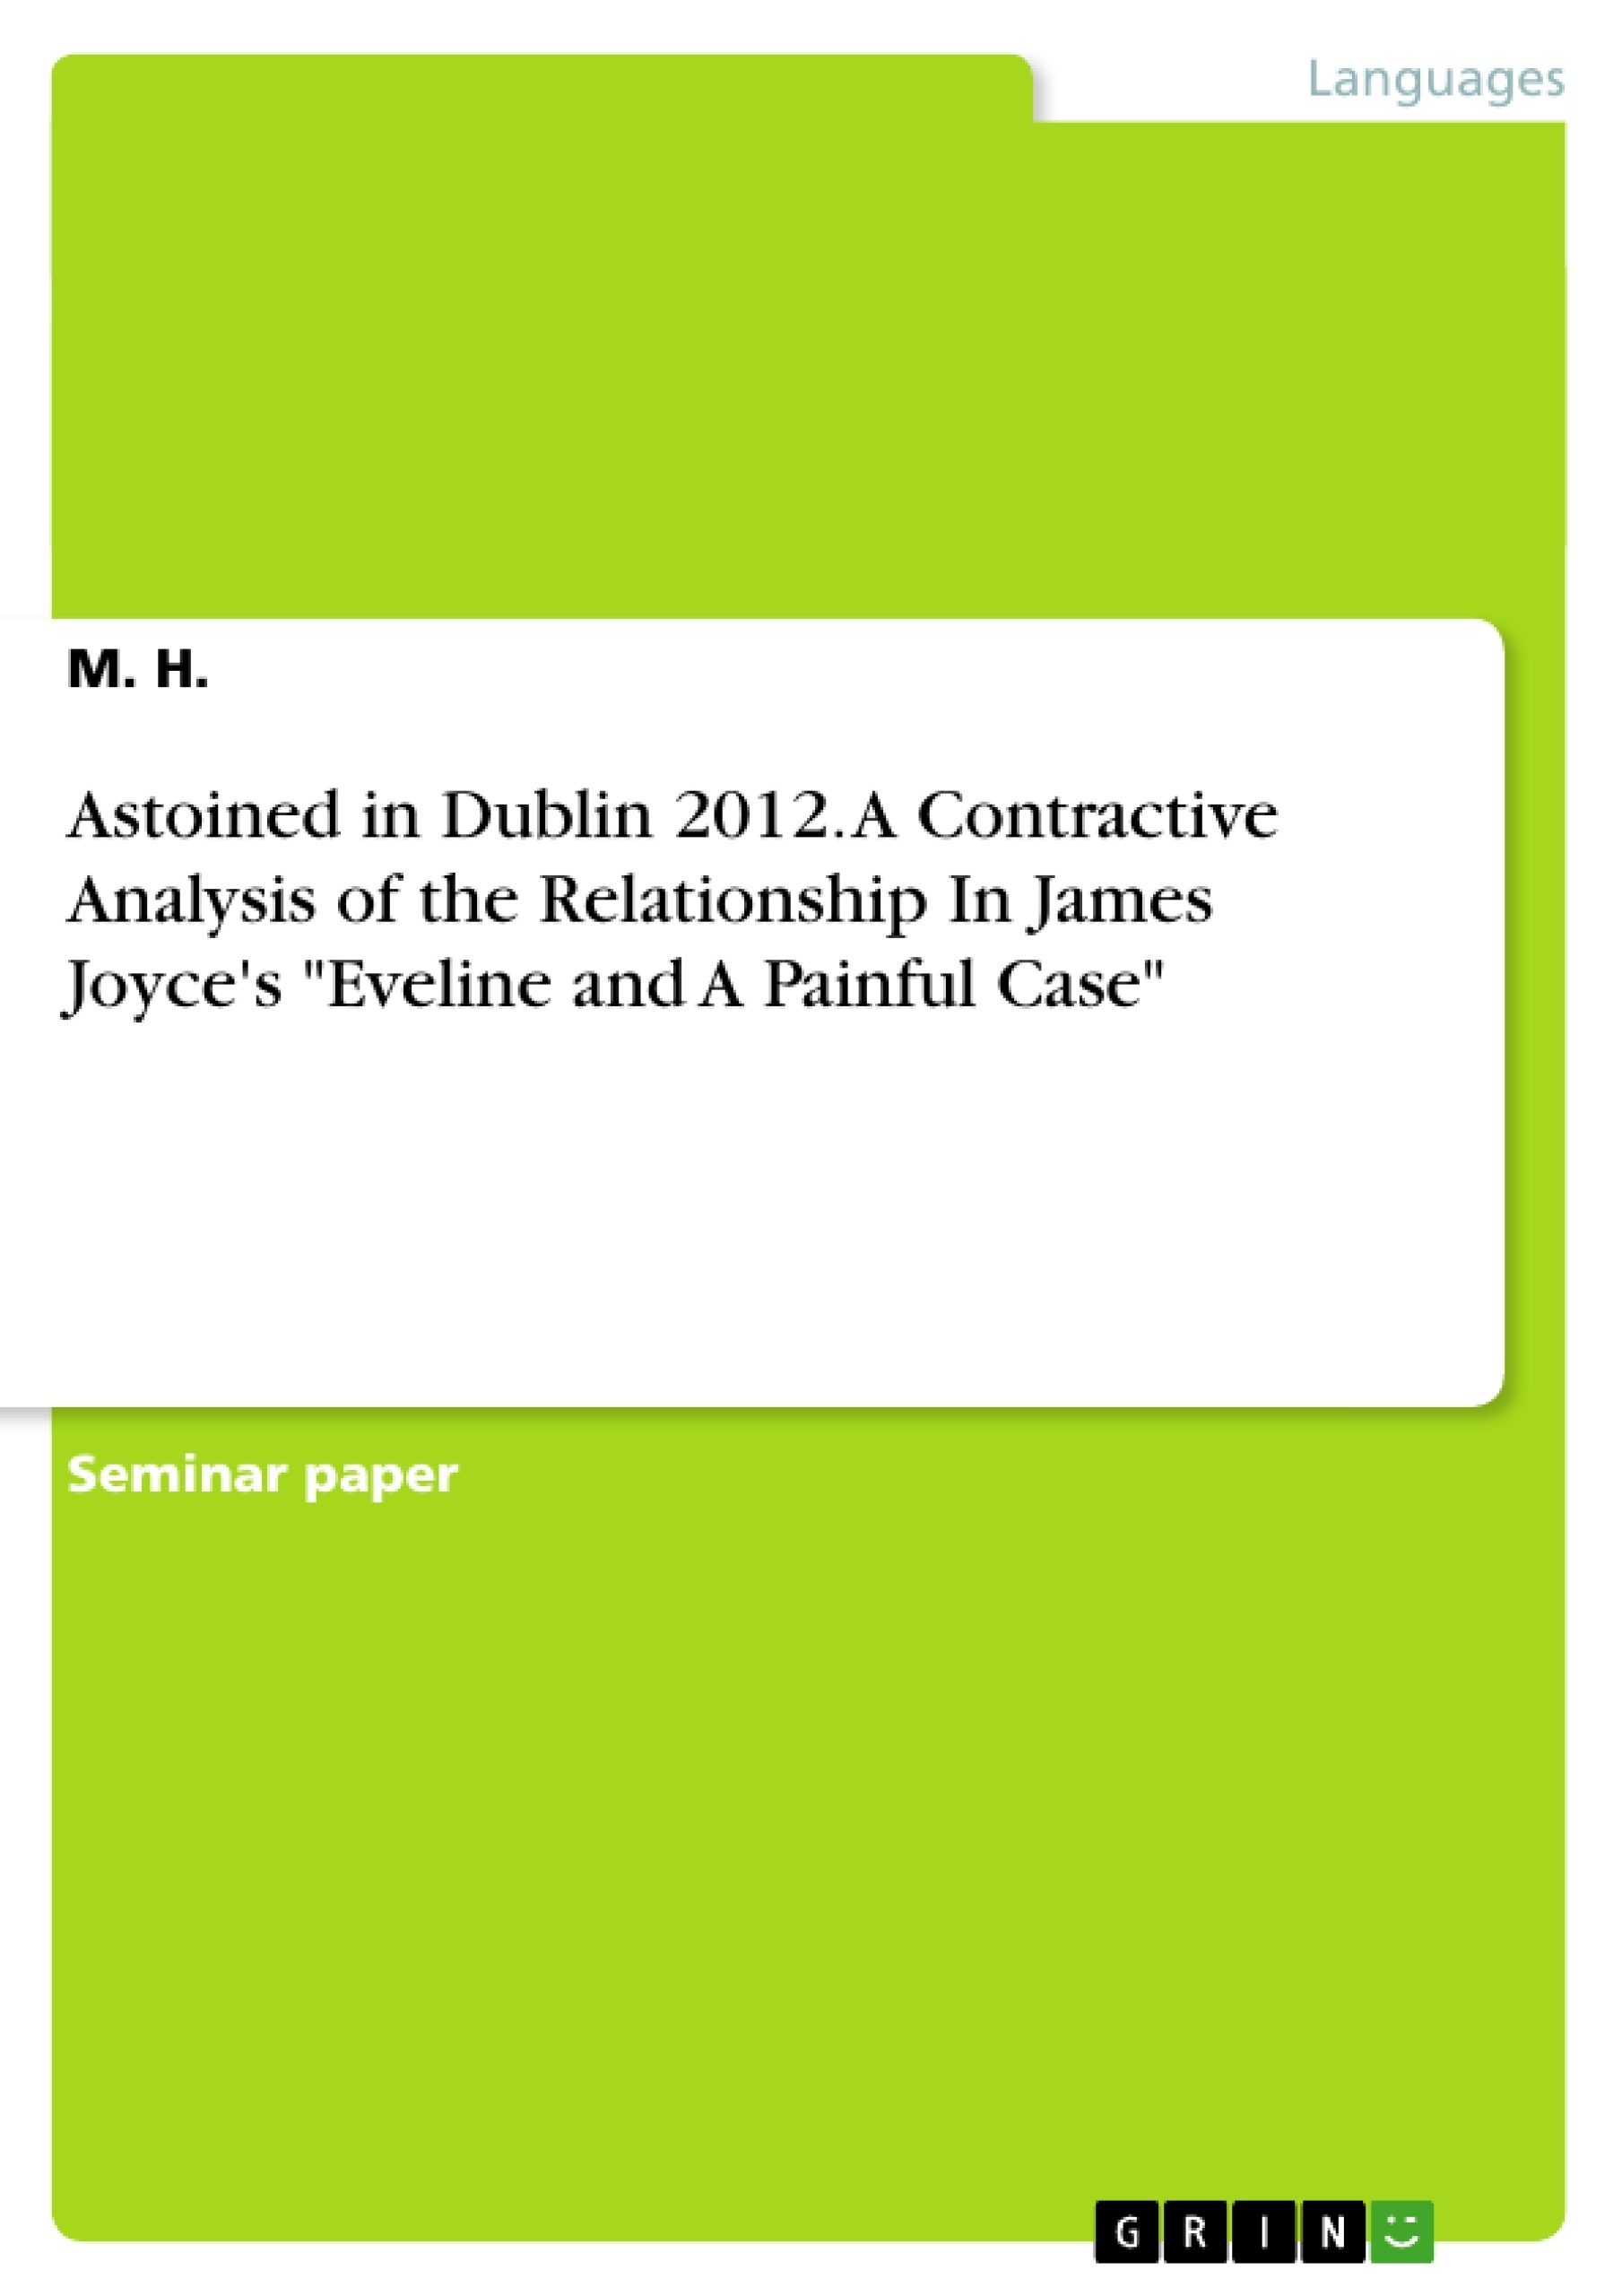 """Title: Astoined in Dublin 2012. A Contractive Analysis of the Relationship In James Joyce's """"Eveline and A Painful Case"""""""